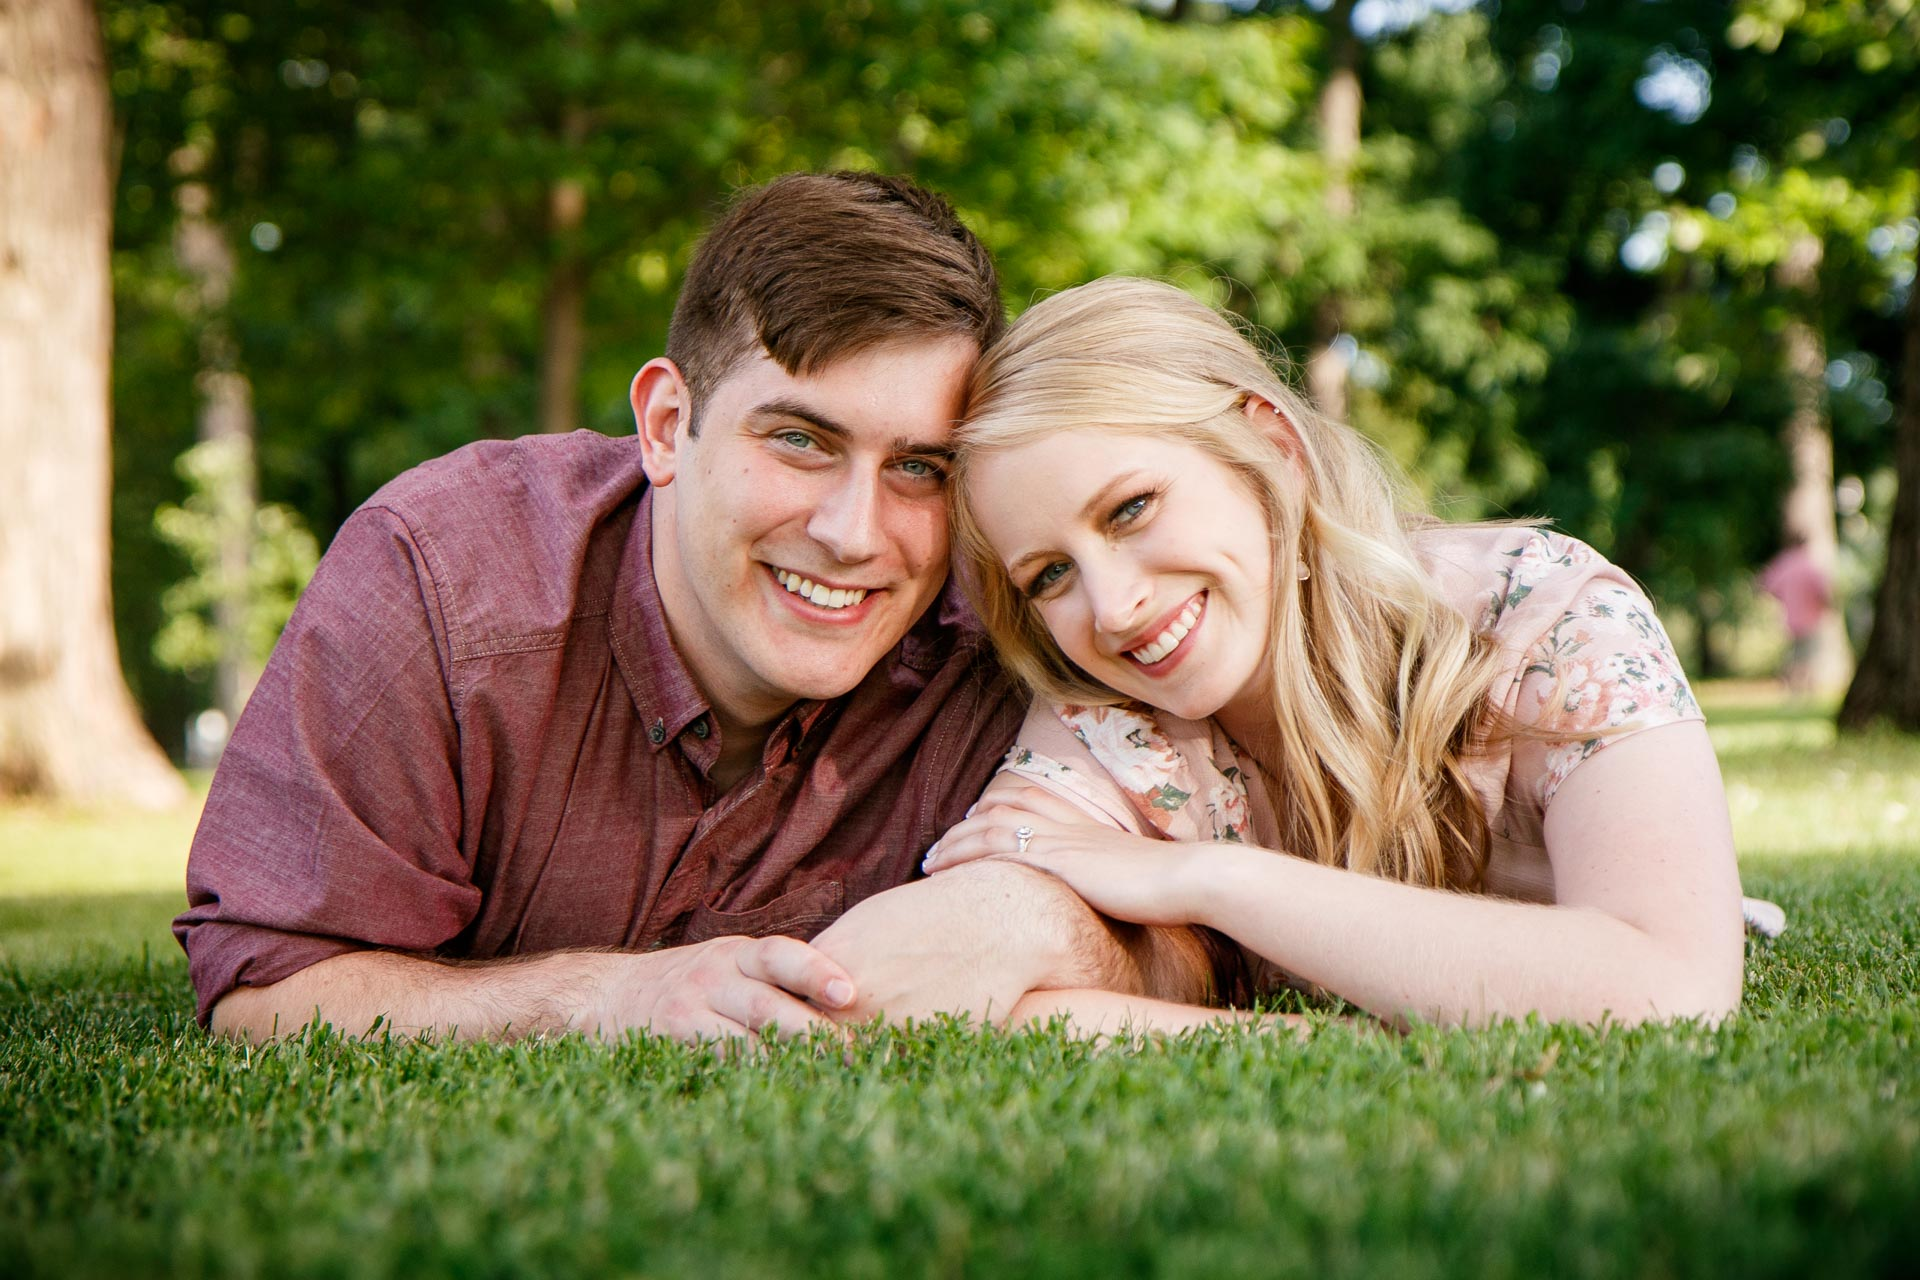 lauren-william-engagement-riverside-park-neenah-adam-shea-photography-green-bay-appleton-neenah-photographer-14.jpg